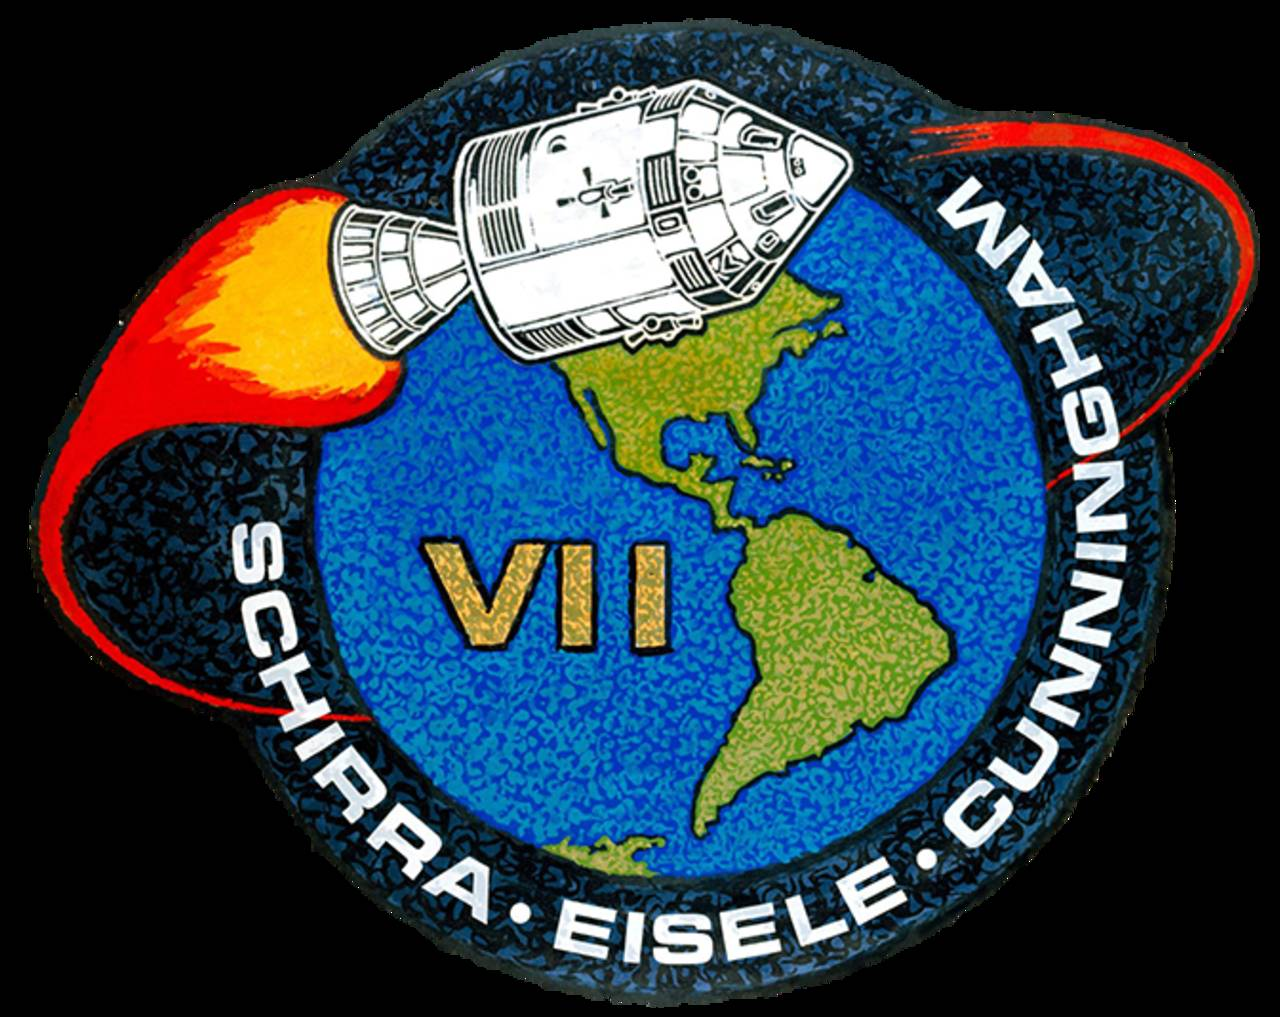 apollo7-patch_1560300879651.png